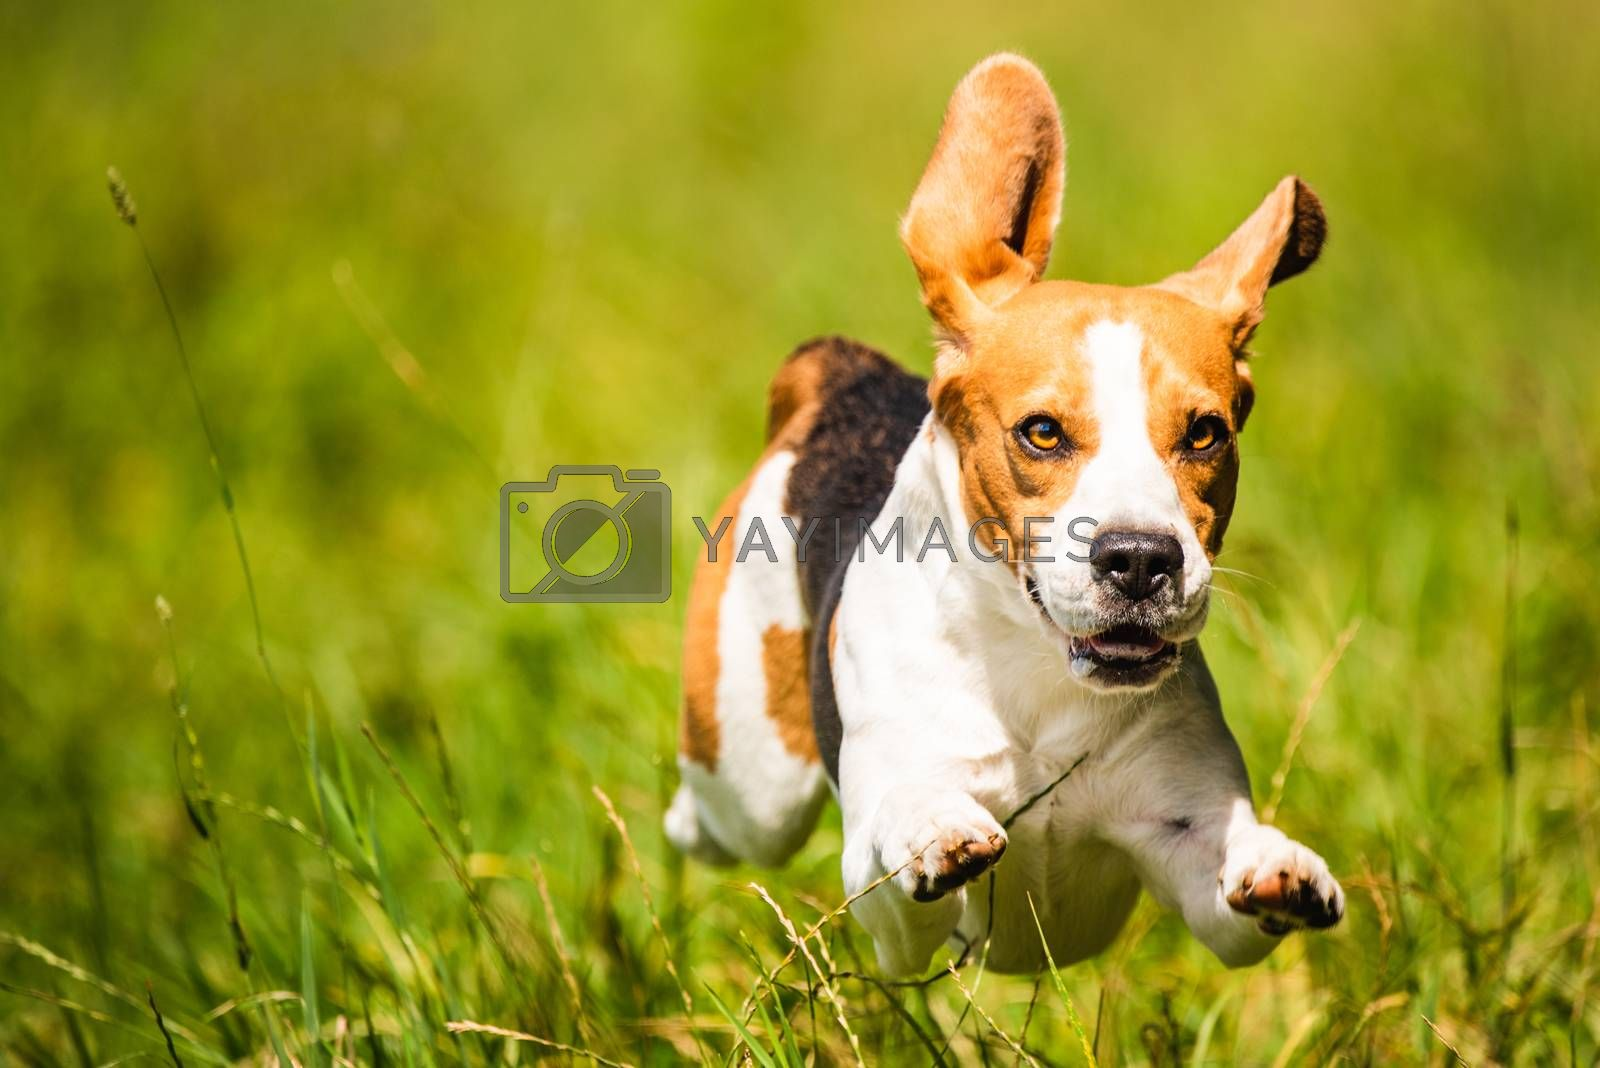 Beagle dog fun on field outdoors run and jump towards camera with feet and ears midair. Dog background.